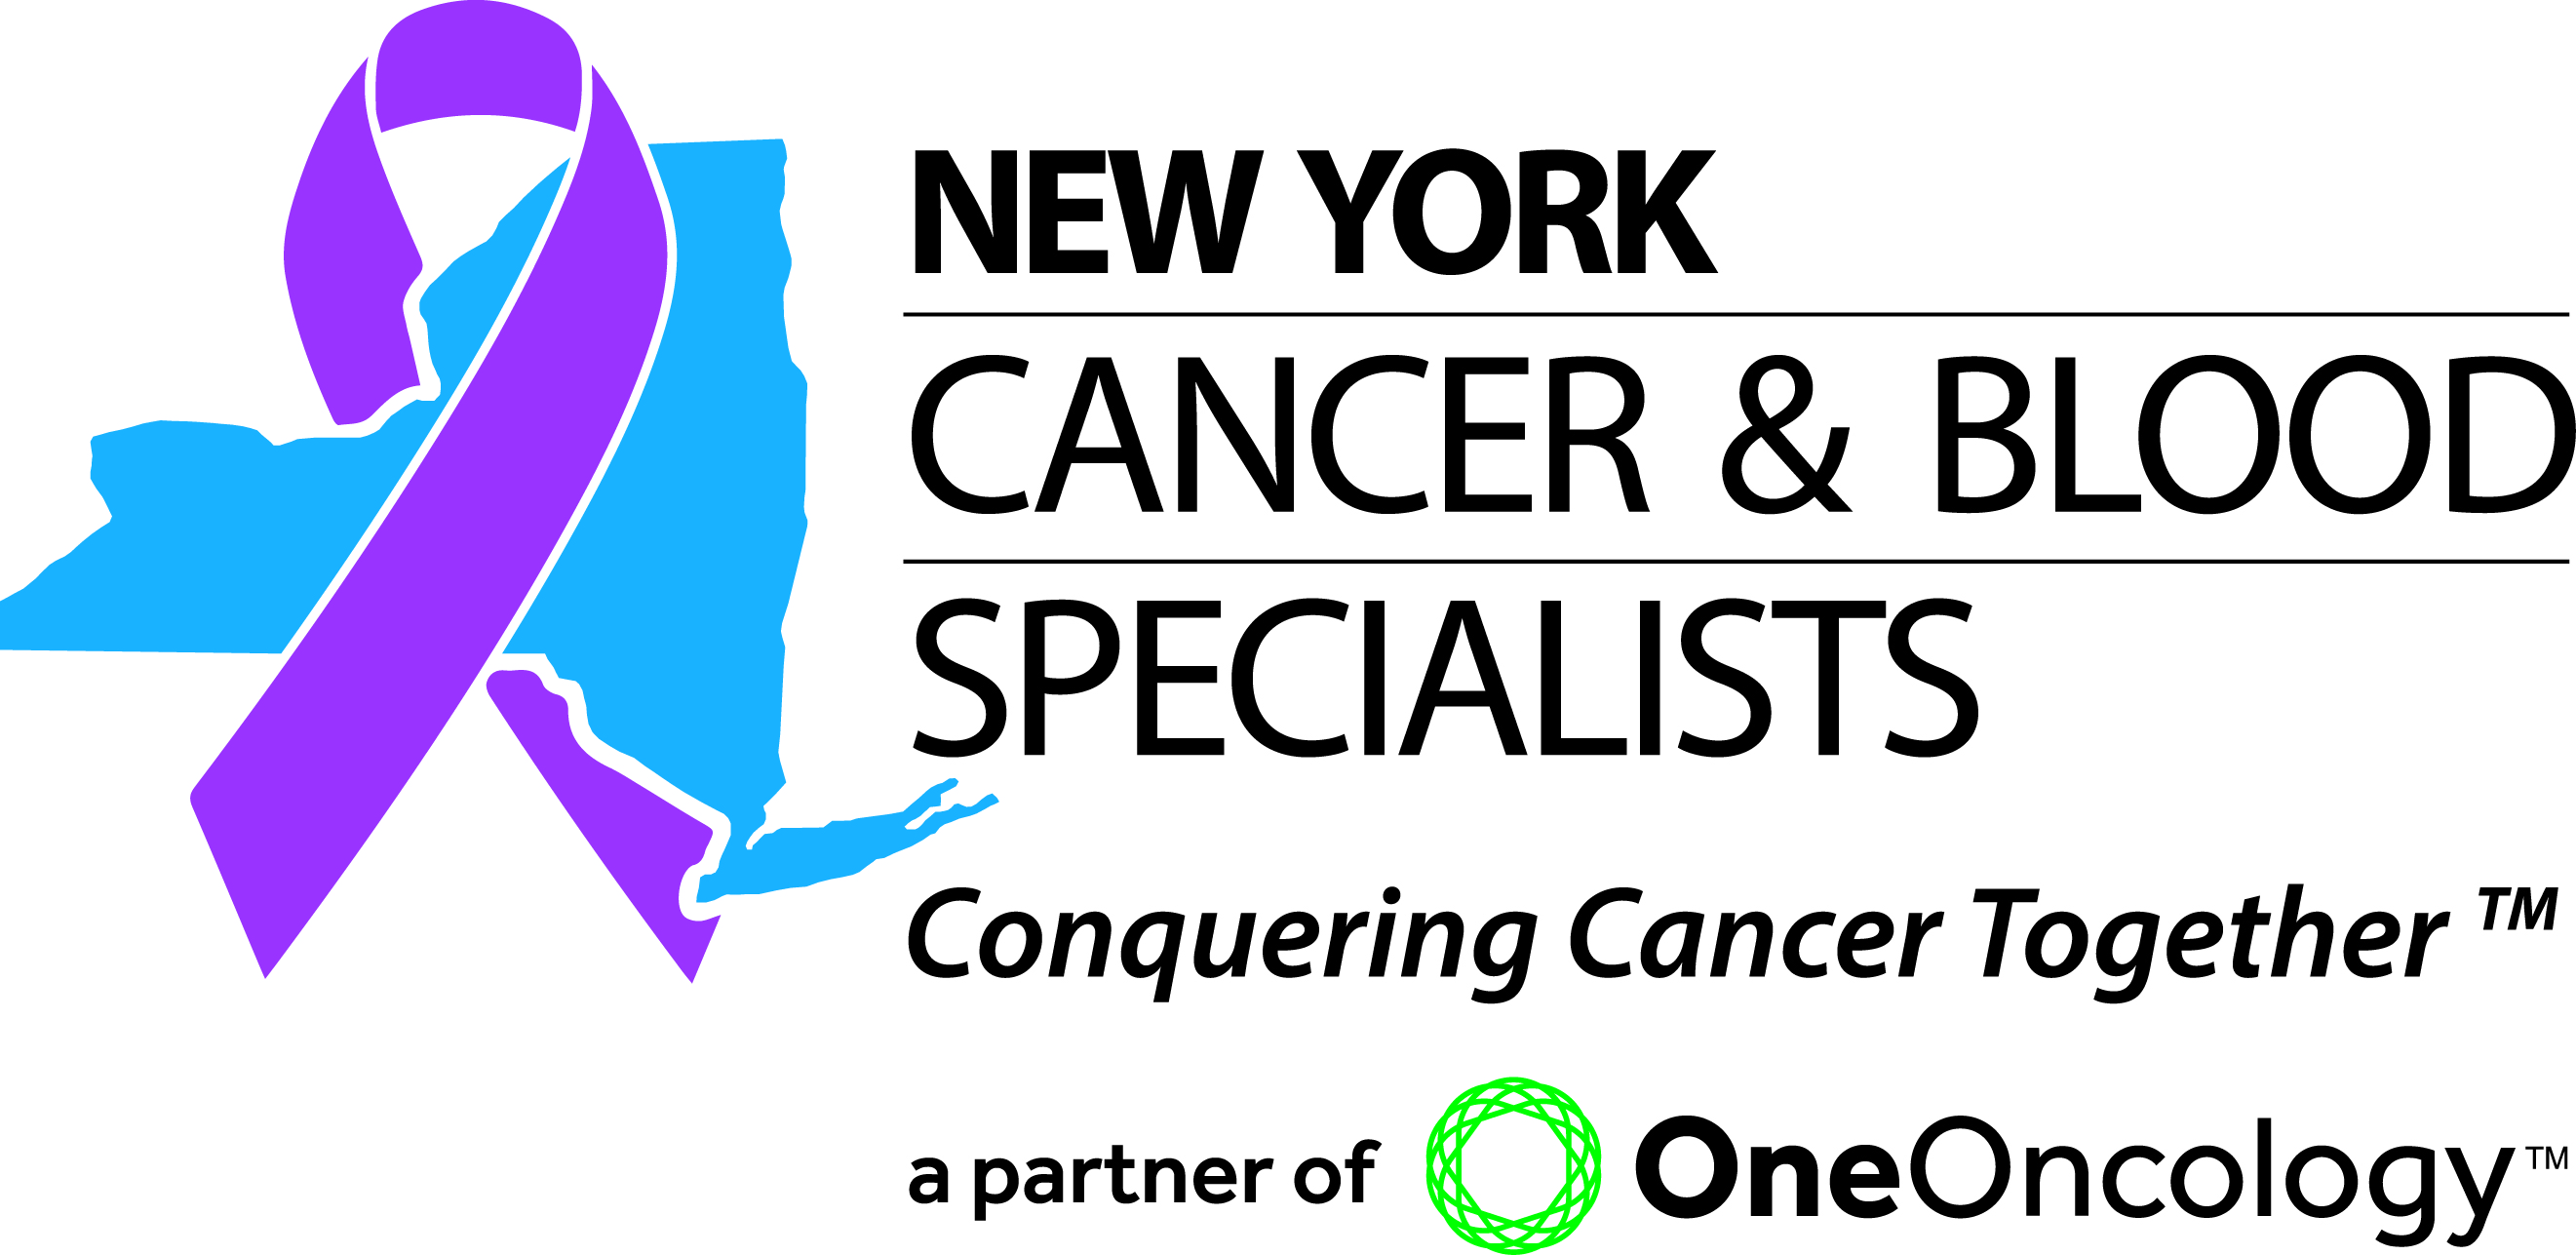 Breast Surgeon Opening Brooklyn Manhattan Queens New York Cancer Blood Specialists Physician Jobs Practicematch Com 614159